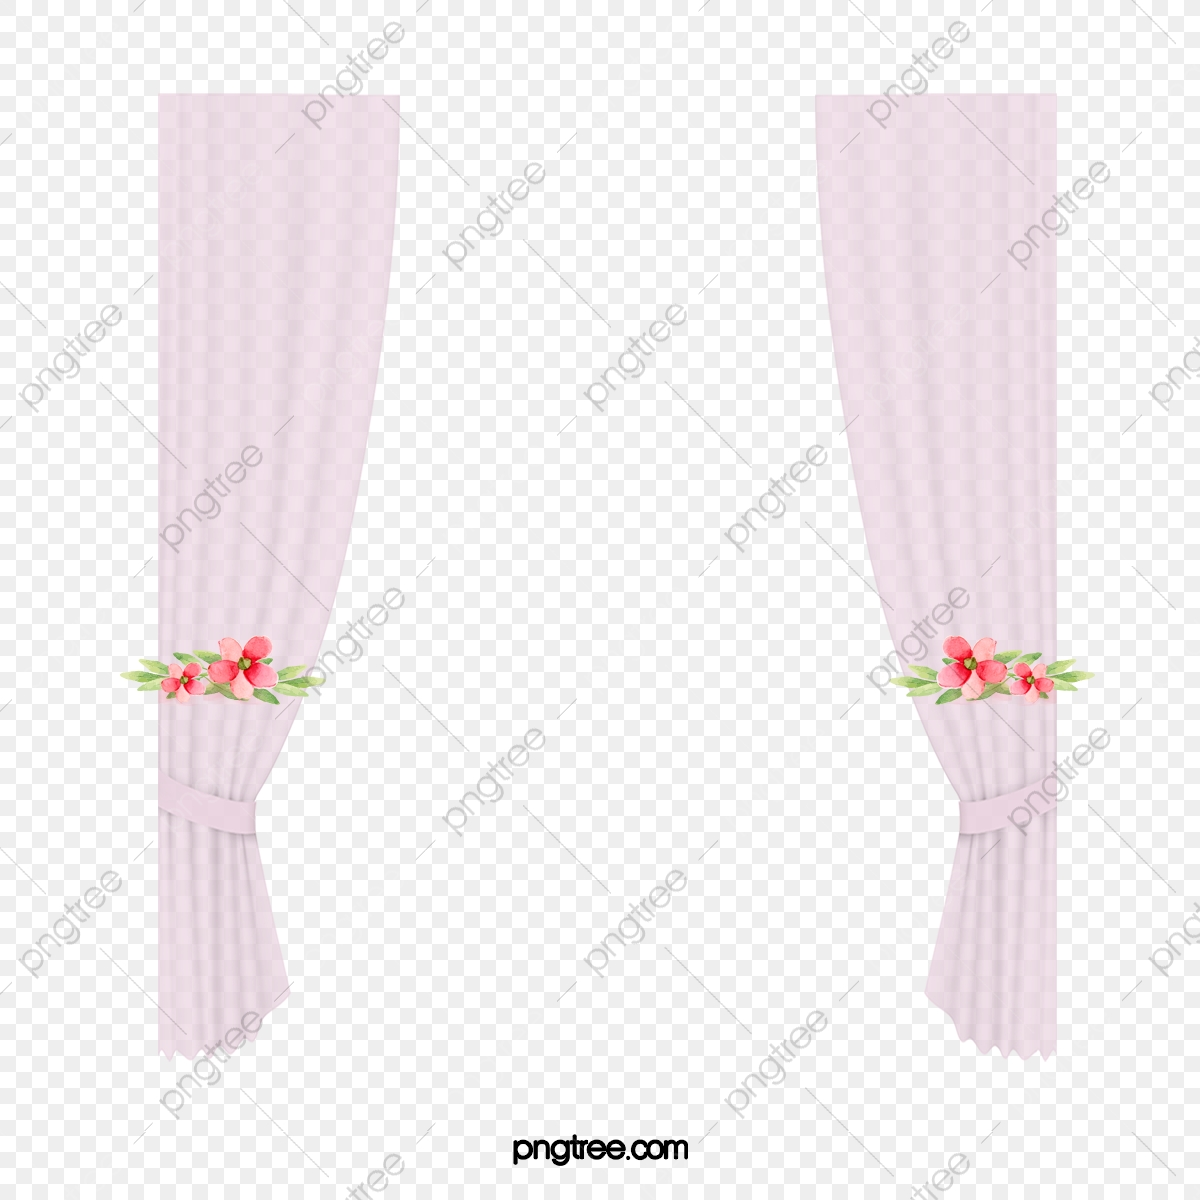 Curtains clipart flower. Purple wedding curtain png